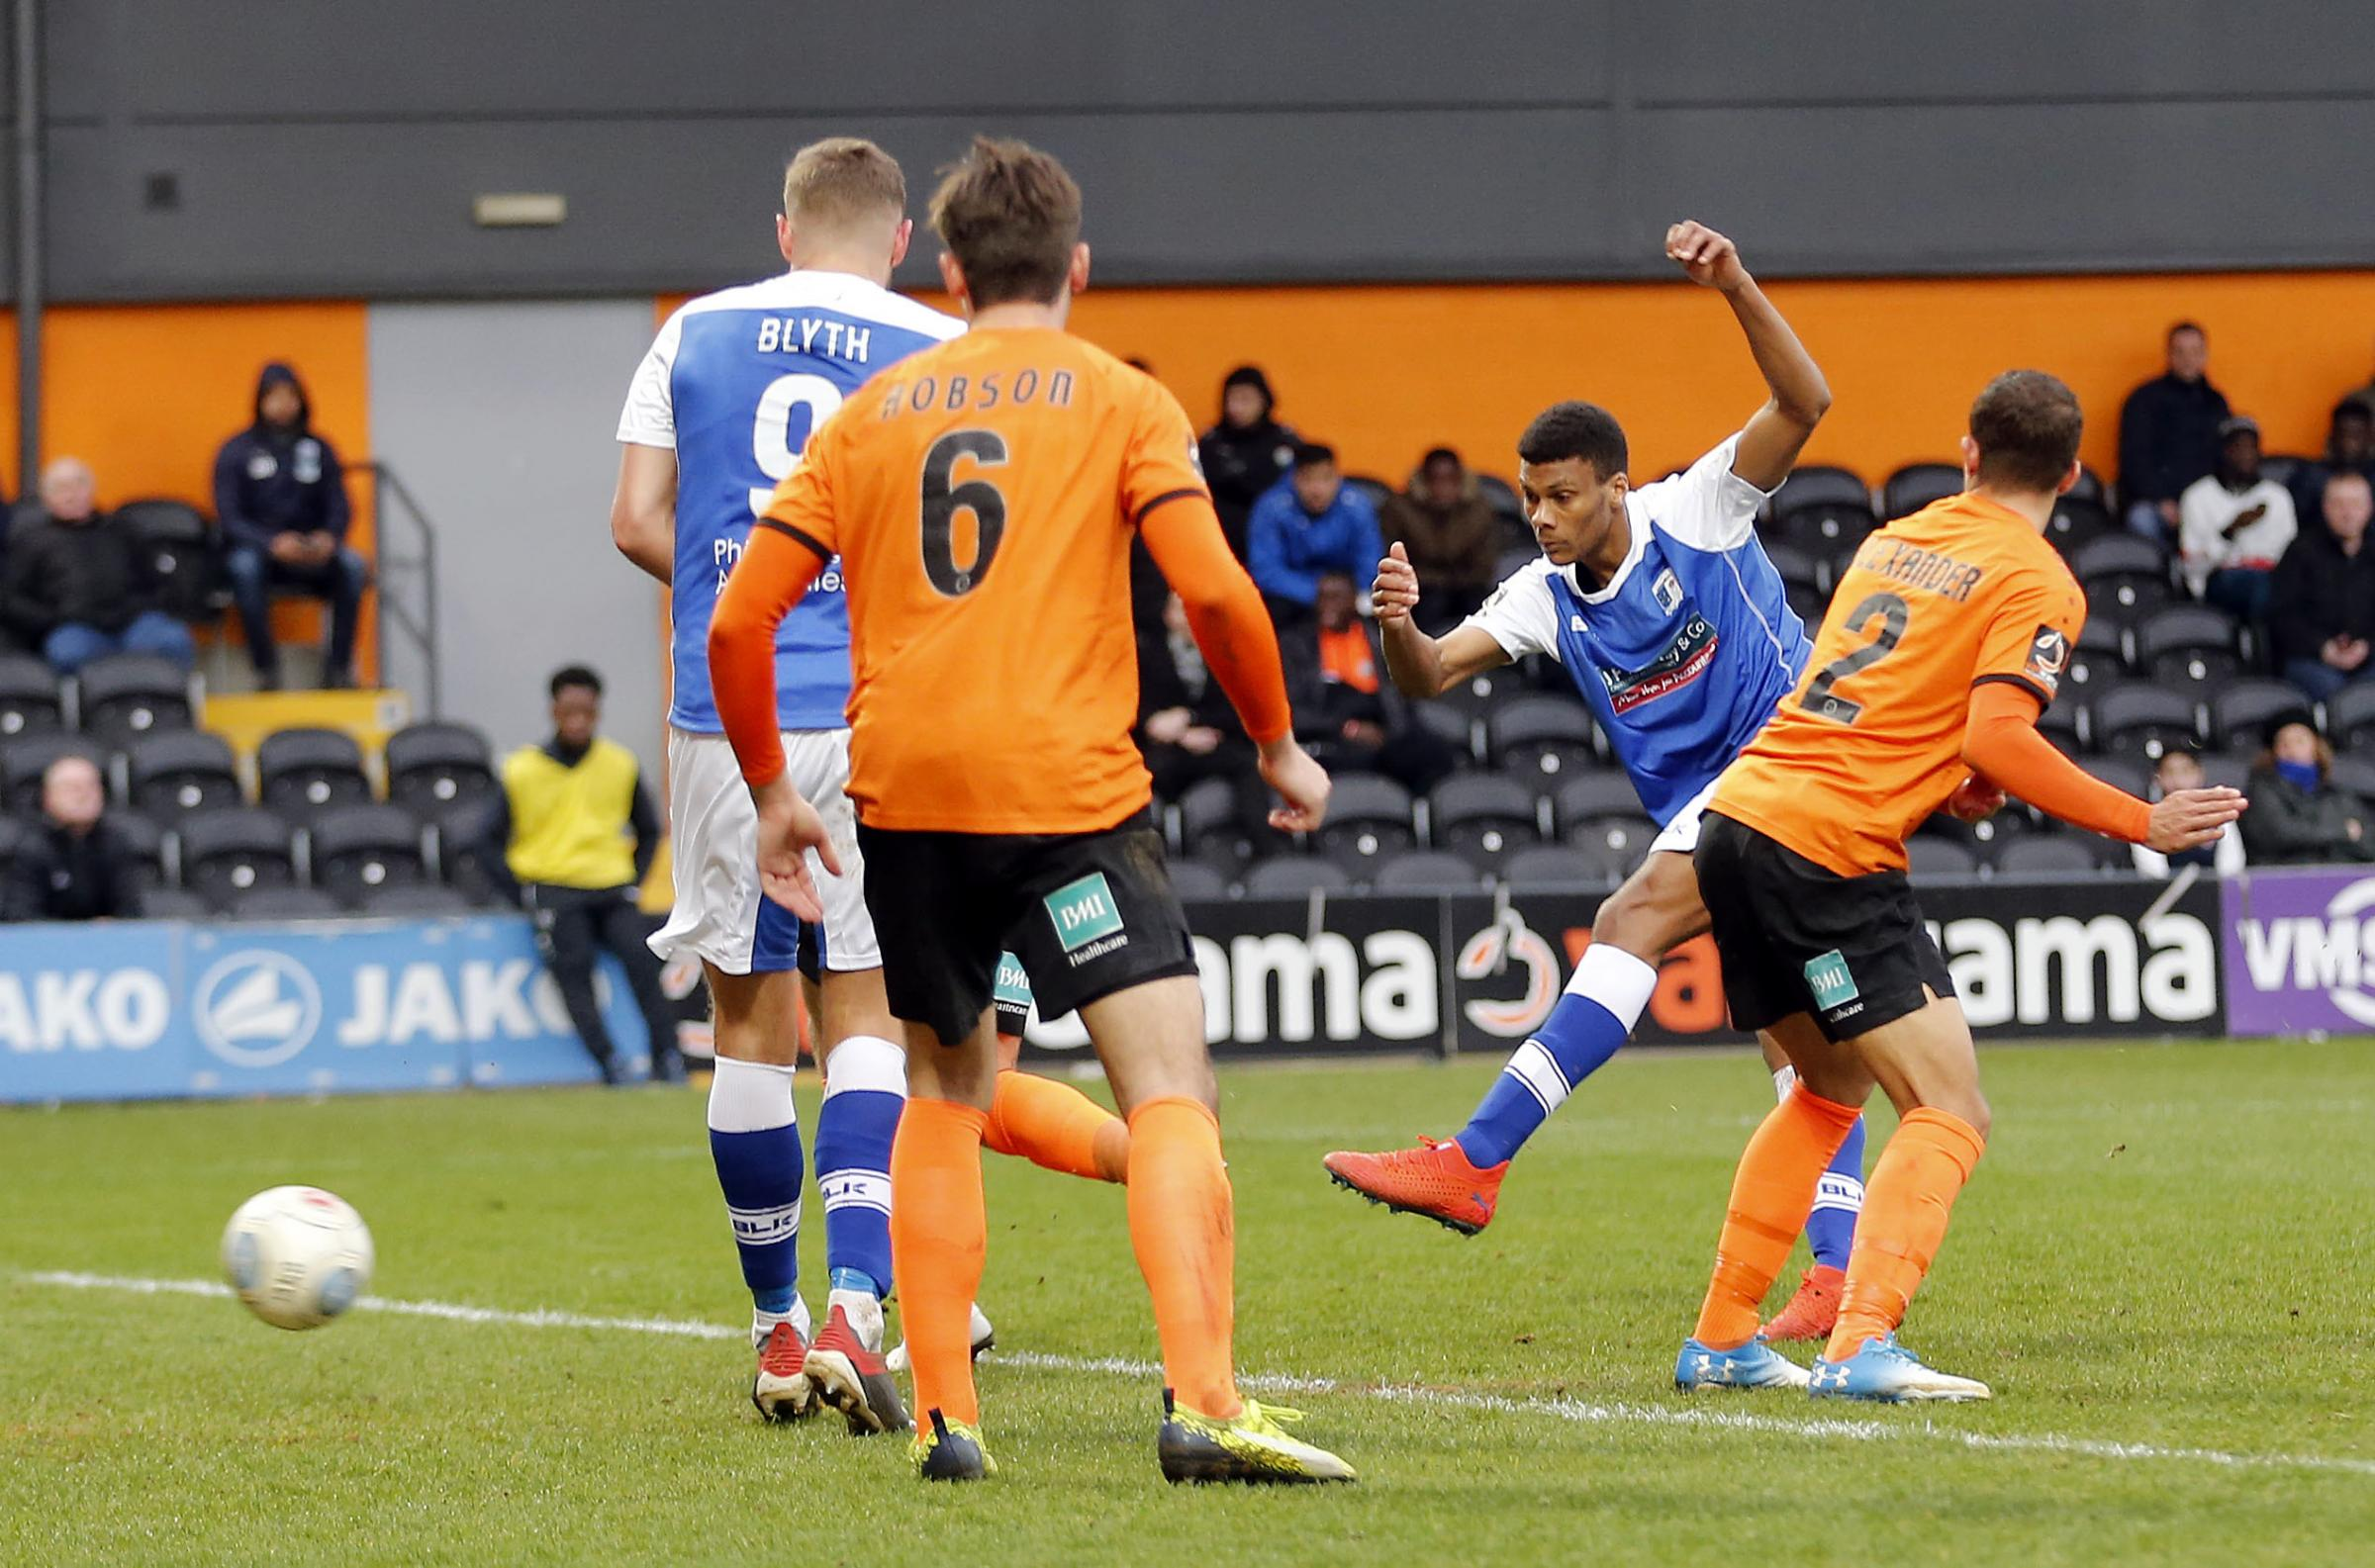 Kyle Jameson scored the Bluebirds' third goal in eight games at Barnet